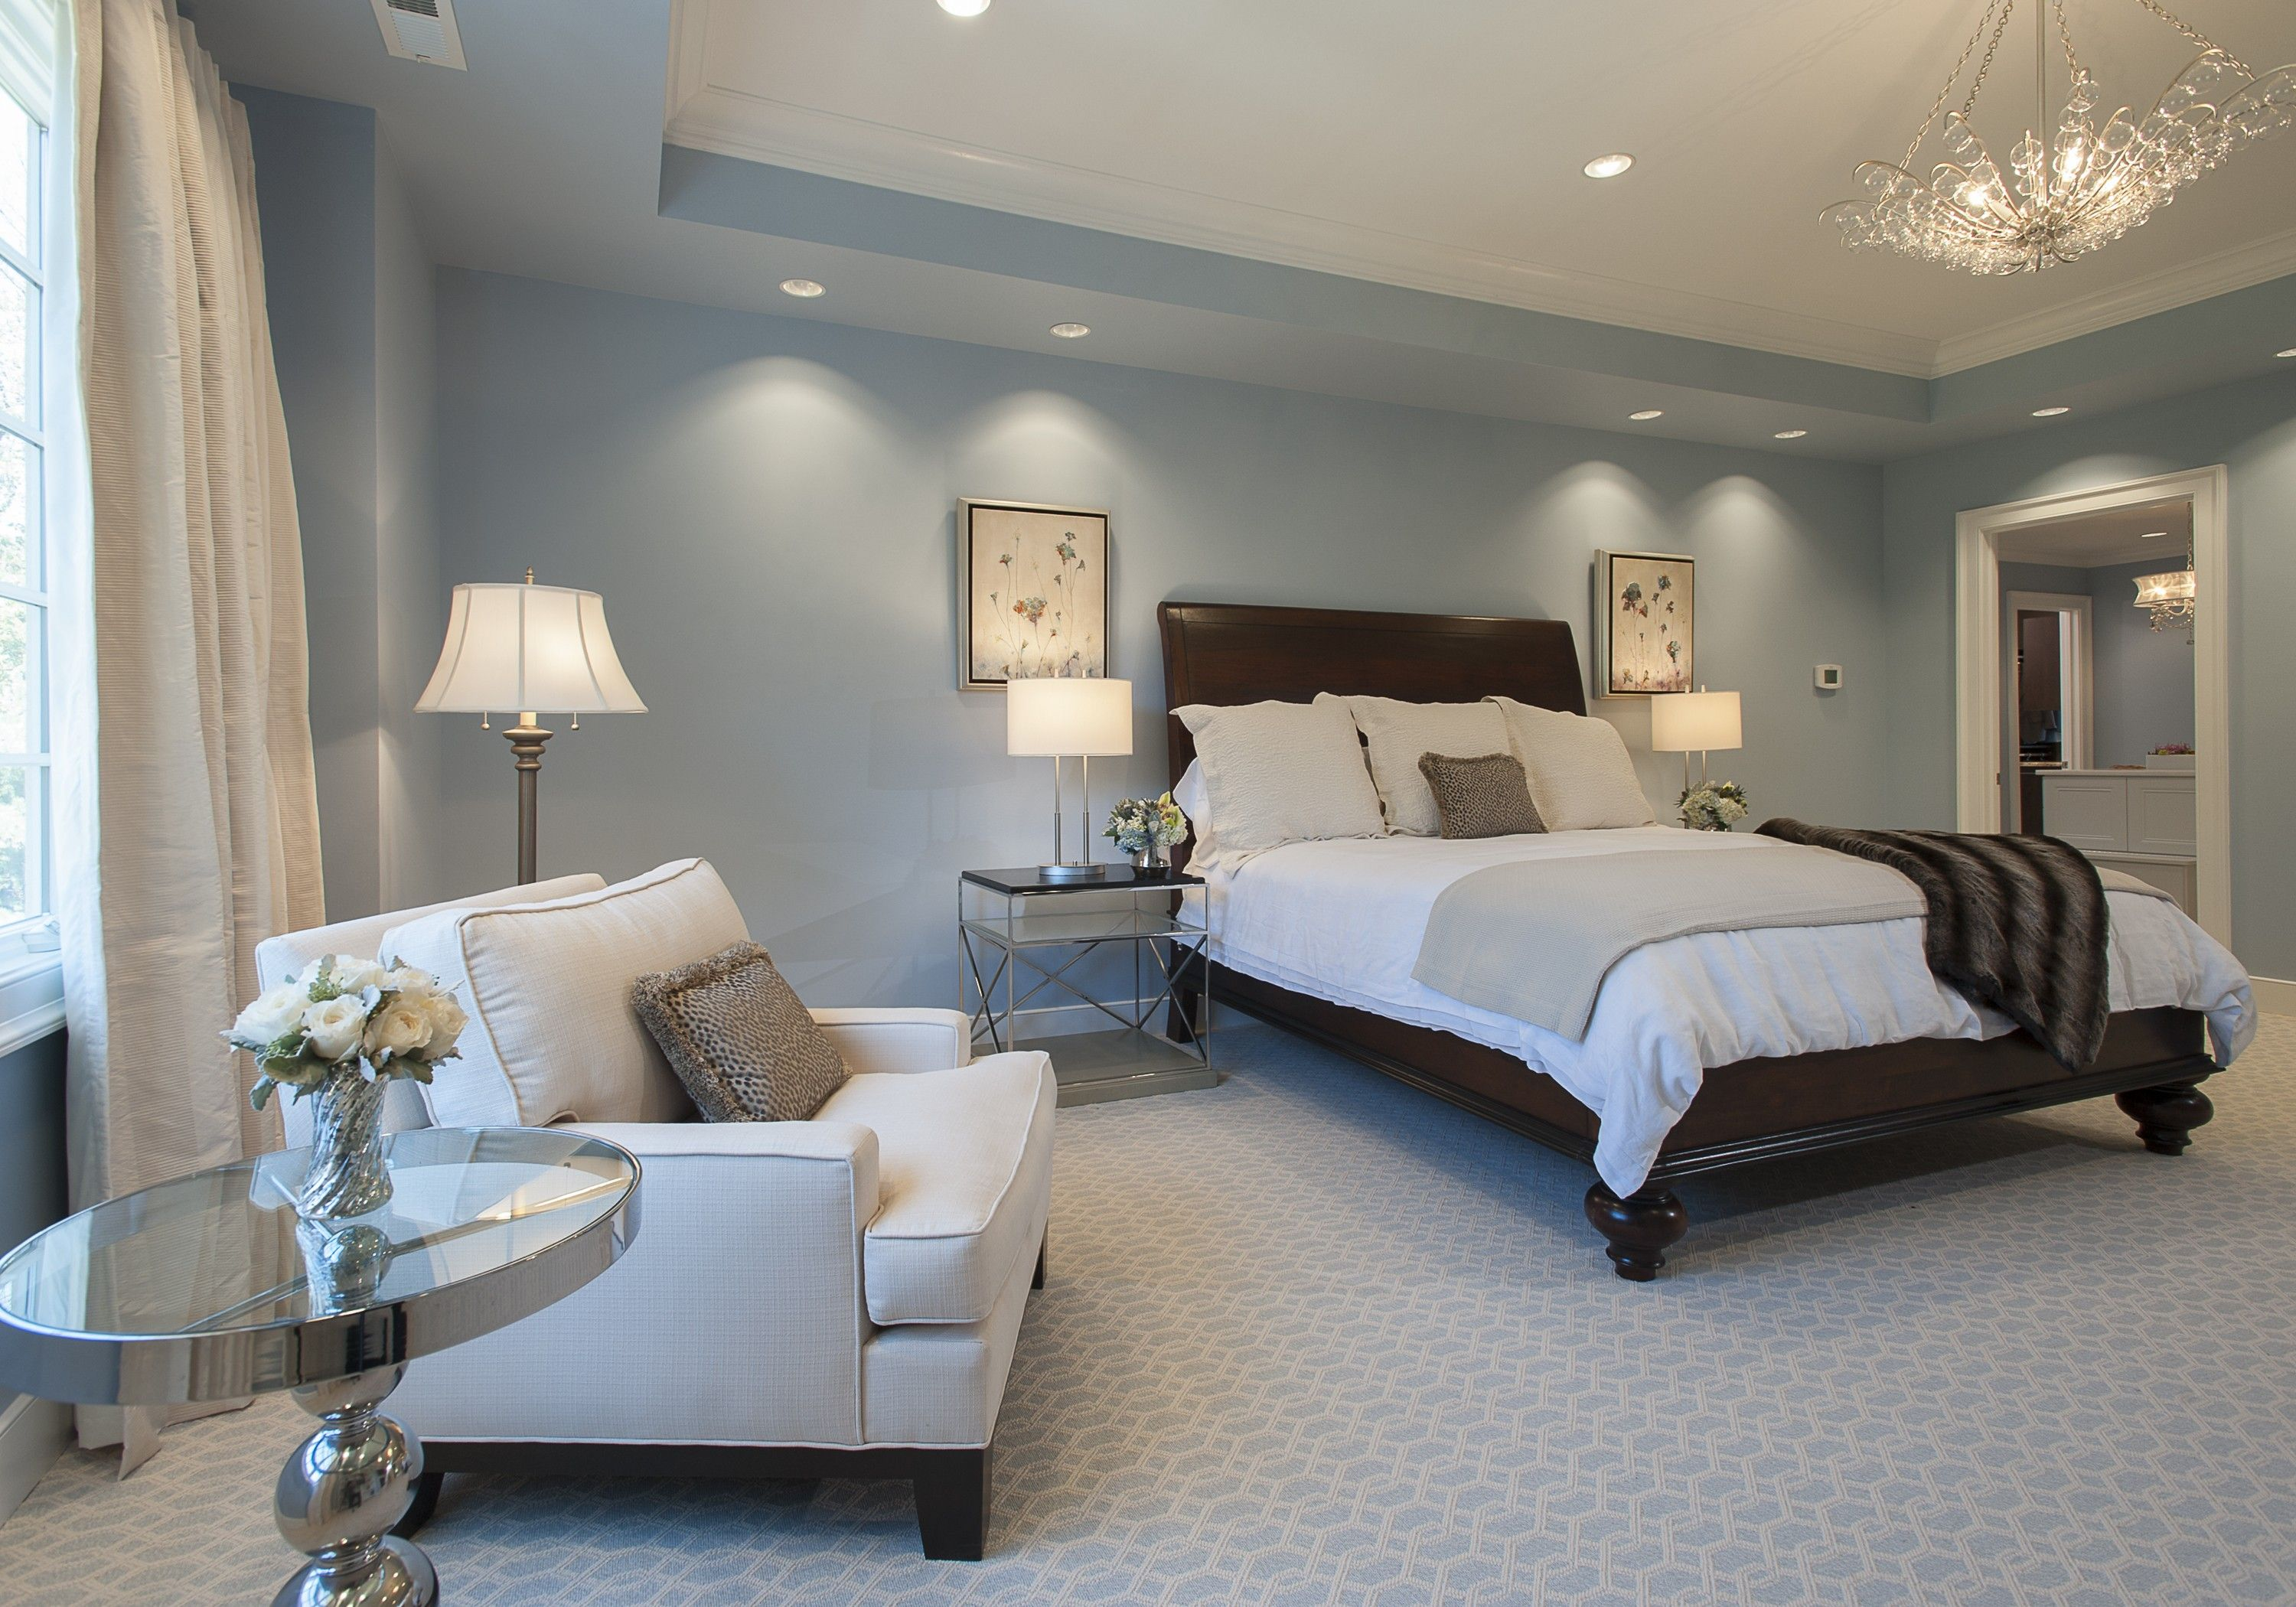 Bedroom Window Treatment Ideas Featured In Light Blue Bedroom Design